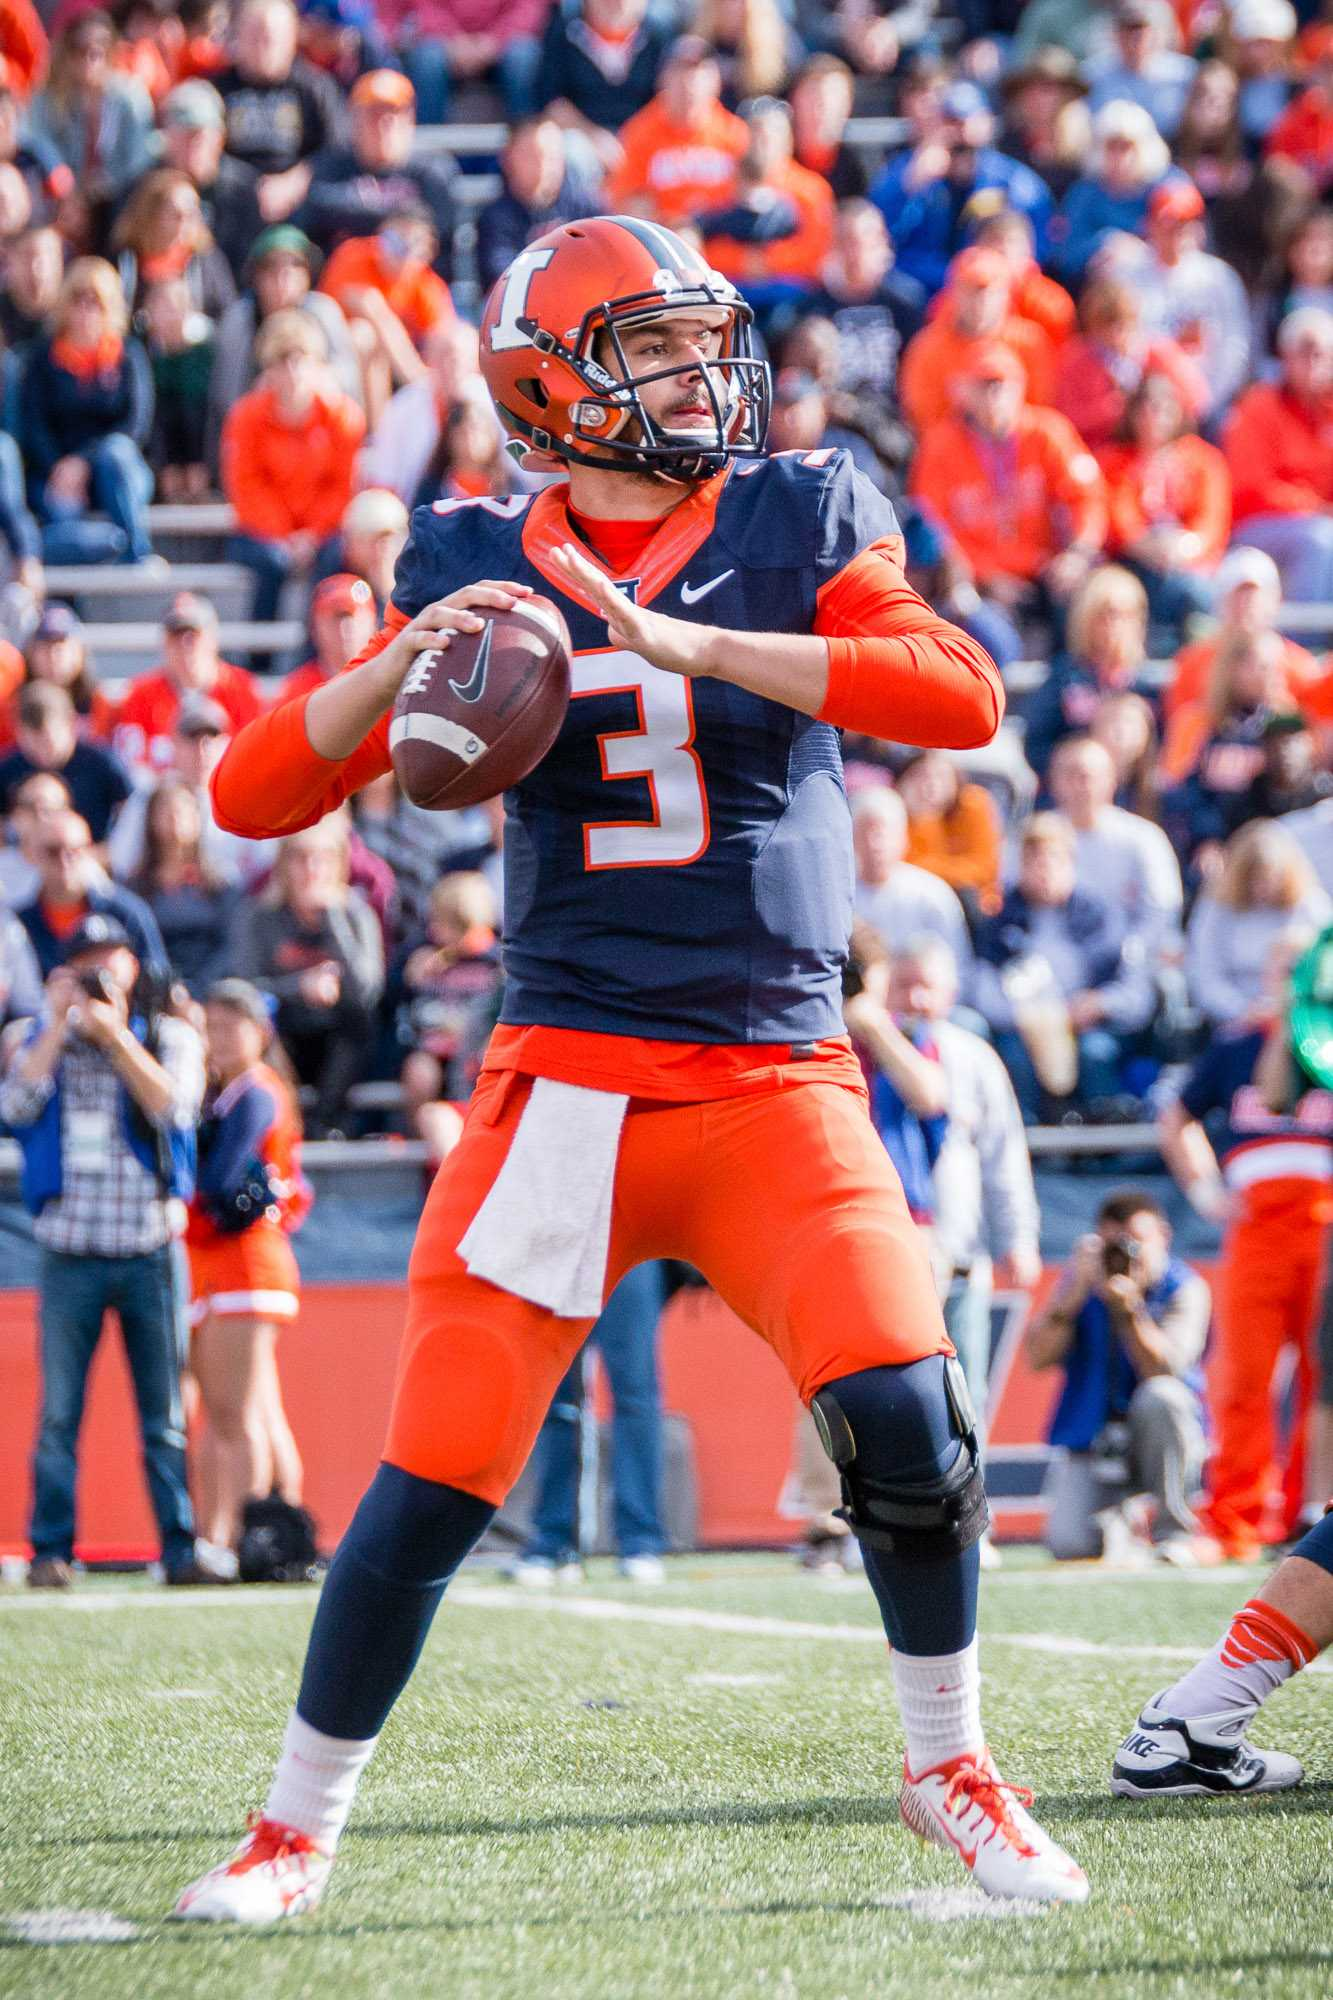 Illinois quarterback Jeff George Jr. looks to pass the ball during the game against Michigan State at Memorial Stadium on Saturday, November 6.